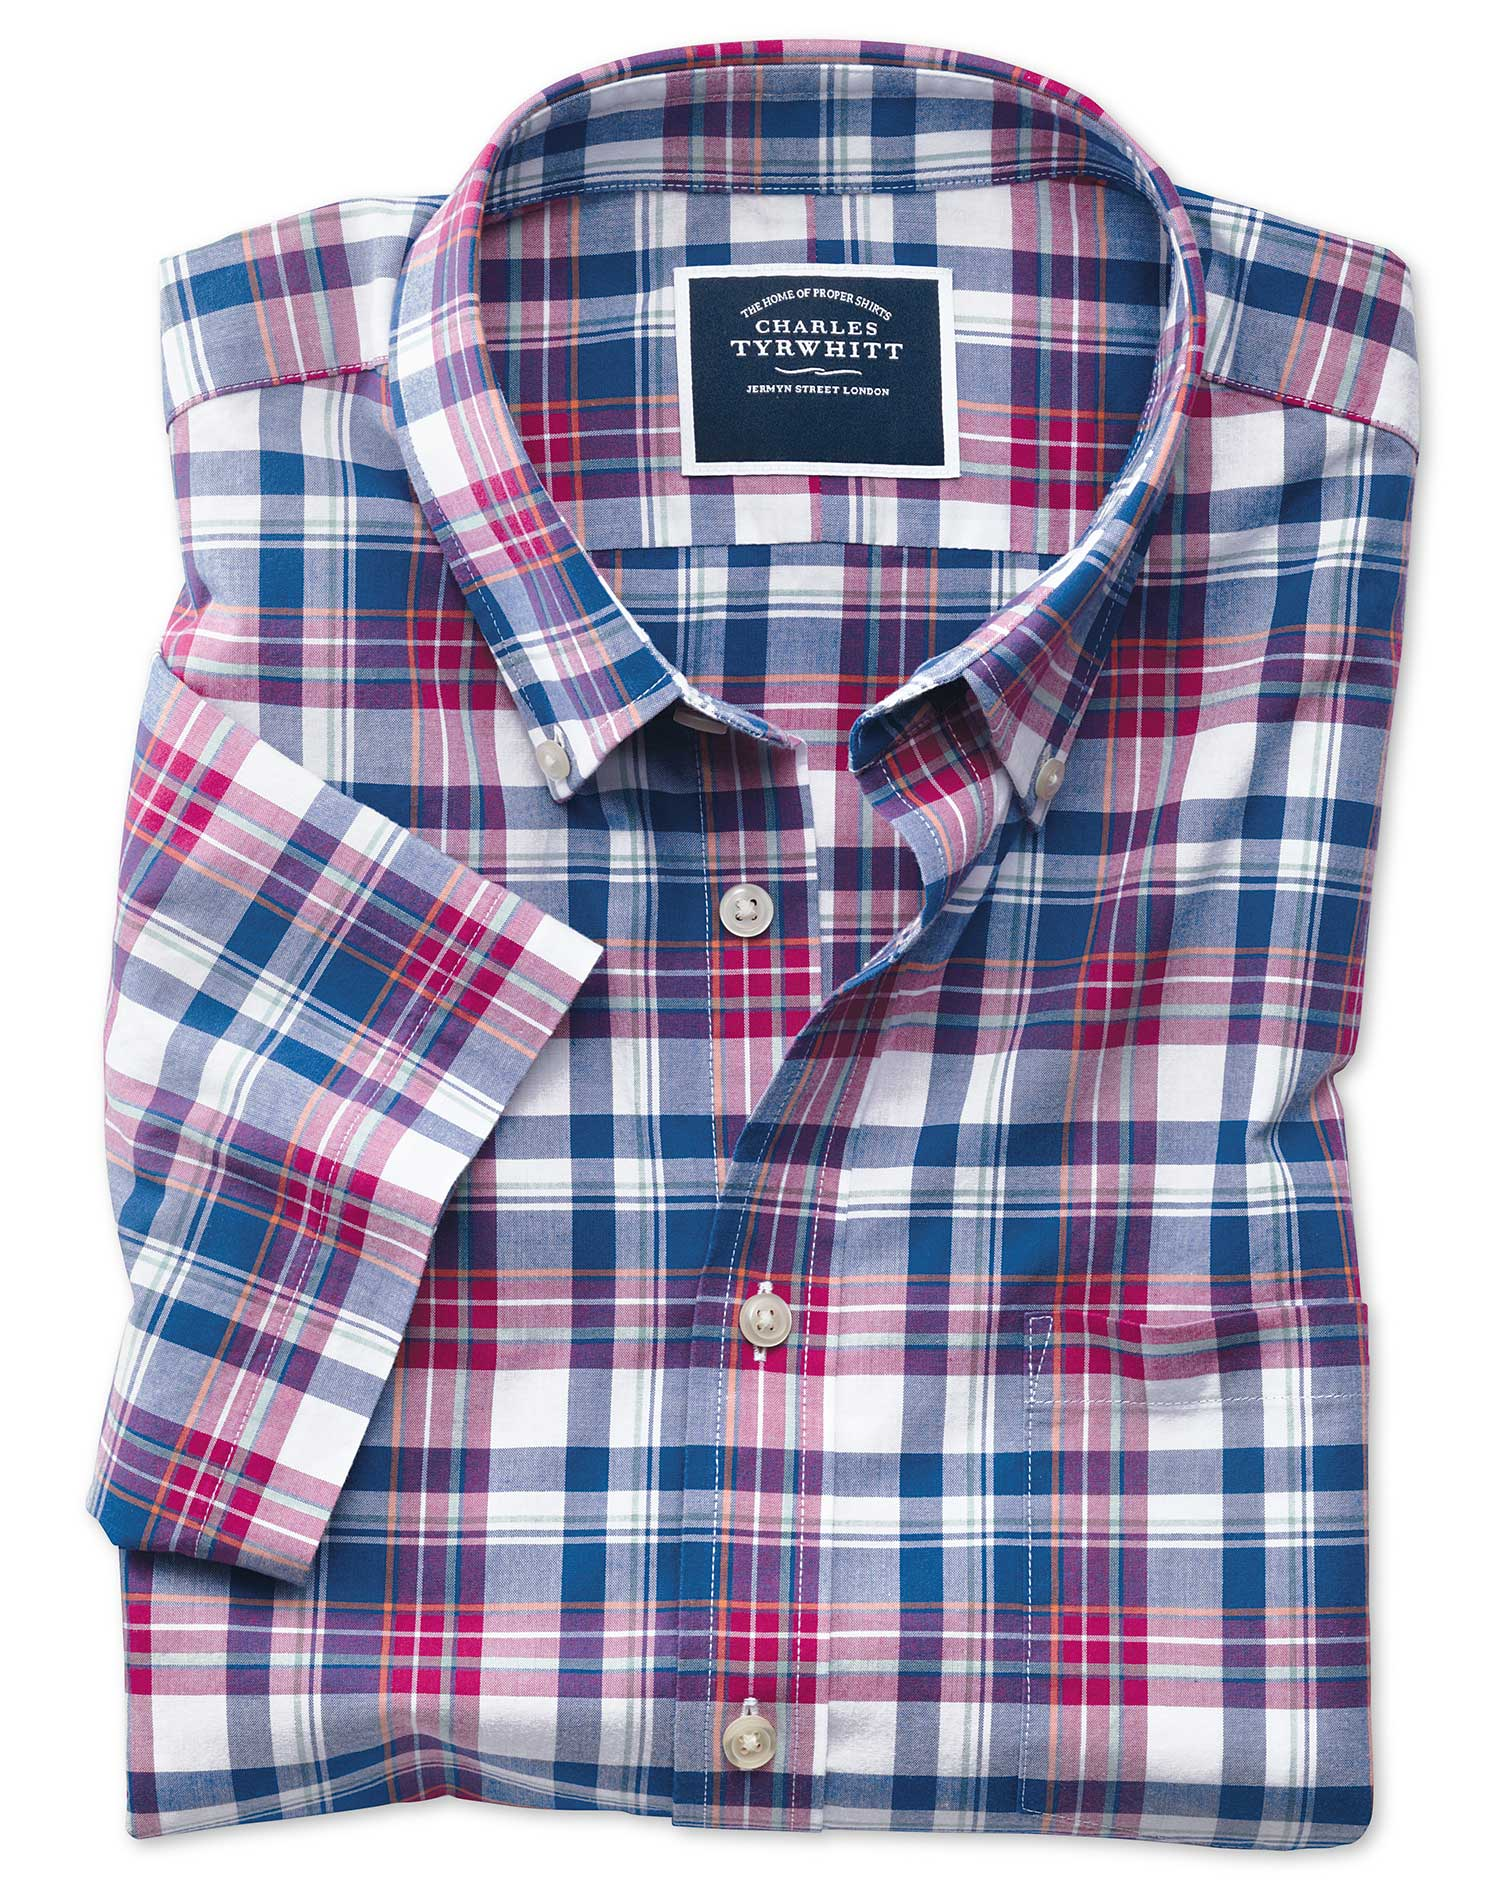 bf98c561b8e76 Clearance. Slim fit pink and navy check short sleeve poplin shirt ·  Clearance